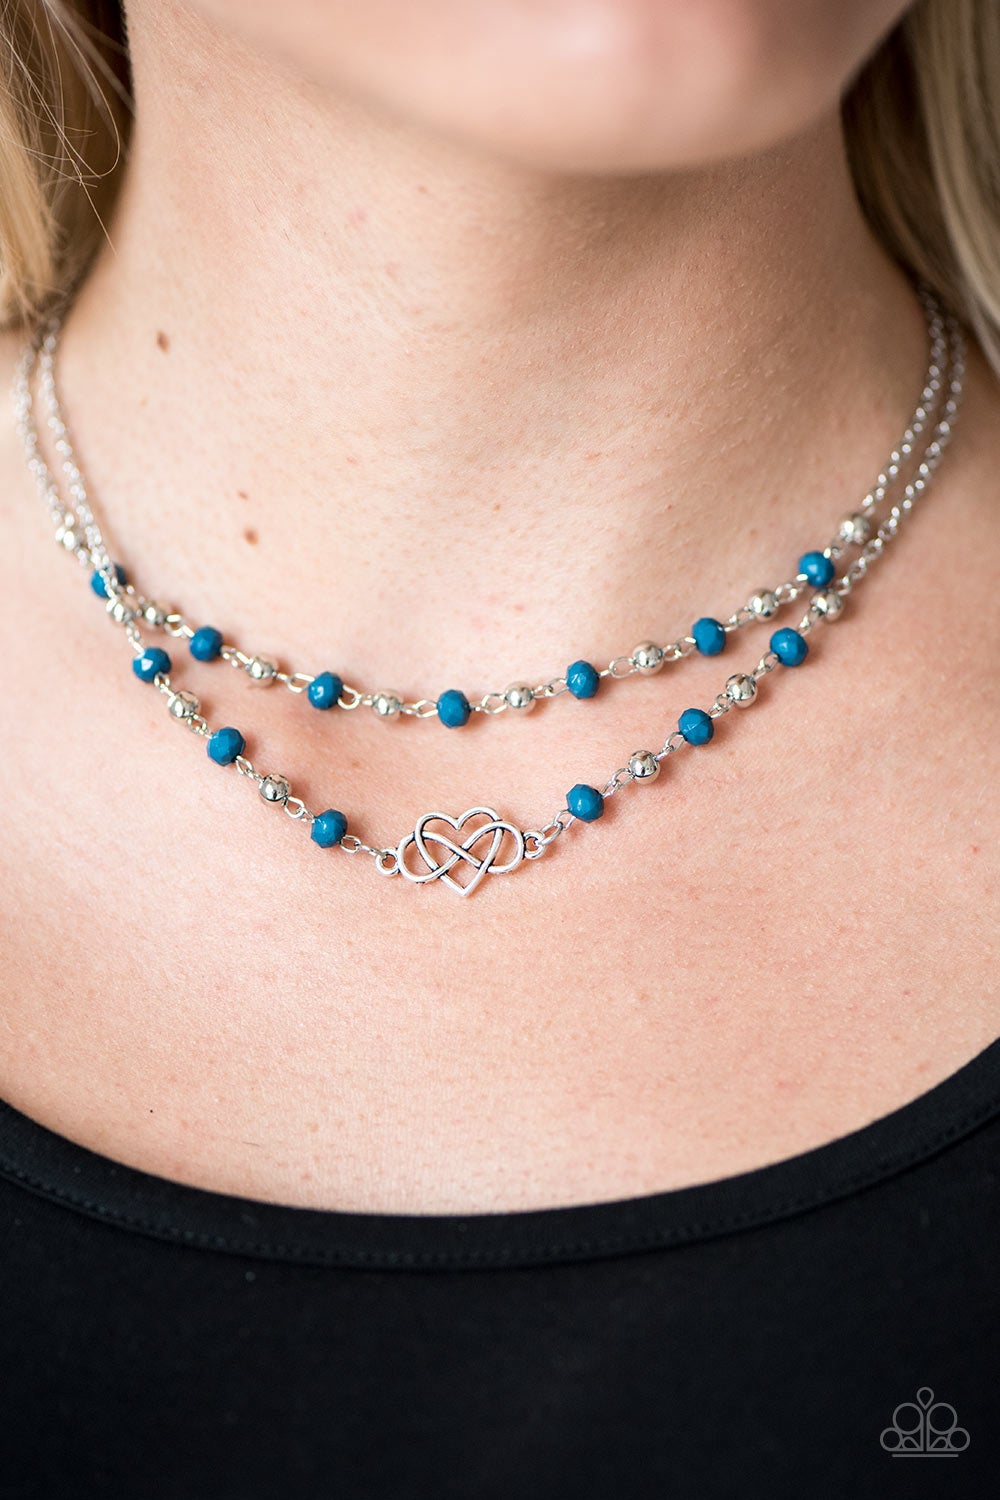 Faceted blue and shiny silver beads trickle along two strands of shimmery silver chain, creating colorful layers beneath the collar. A shimmery silver infinity charm loops through a shimmery heart, creating a whimsical centerpiece. Features an adjustable clasp closure.